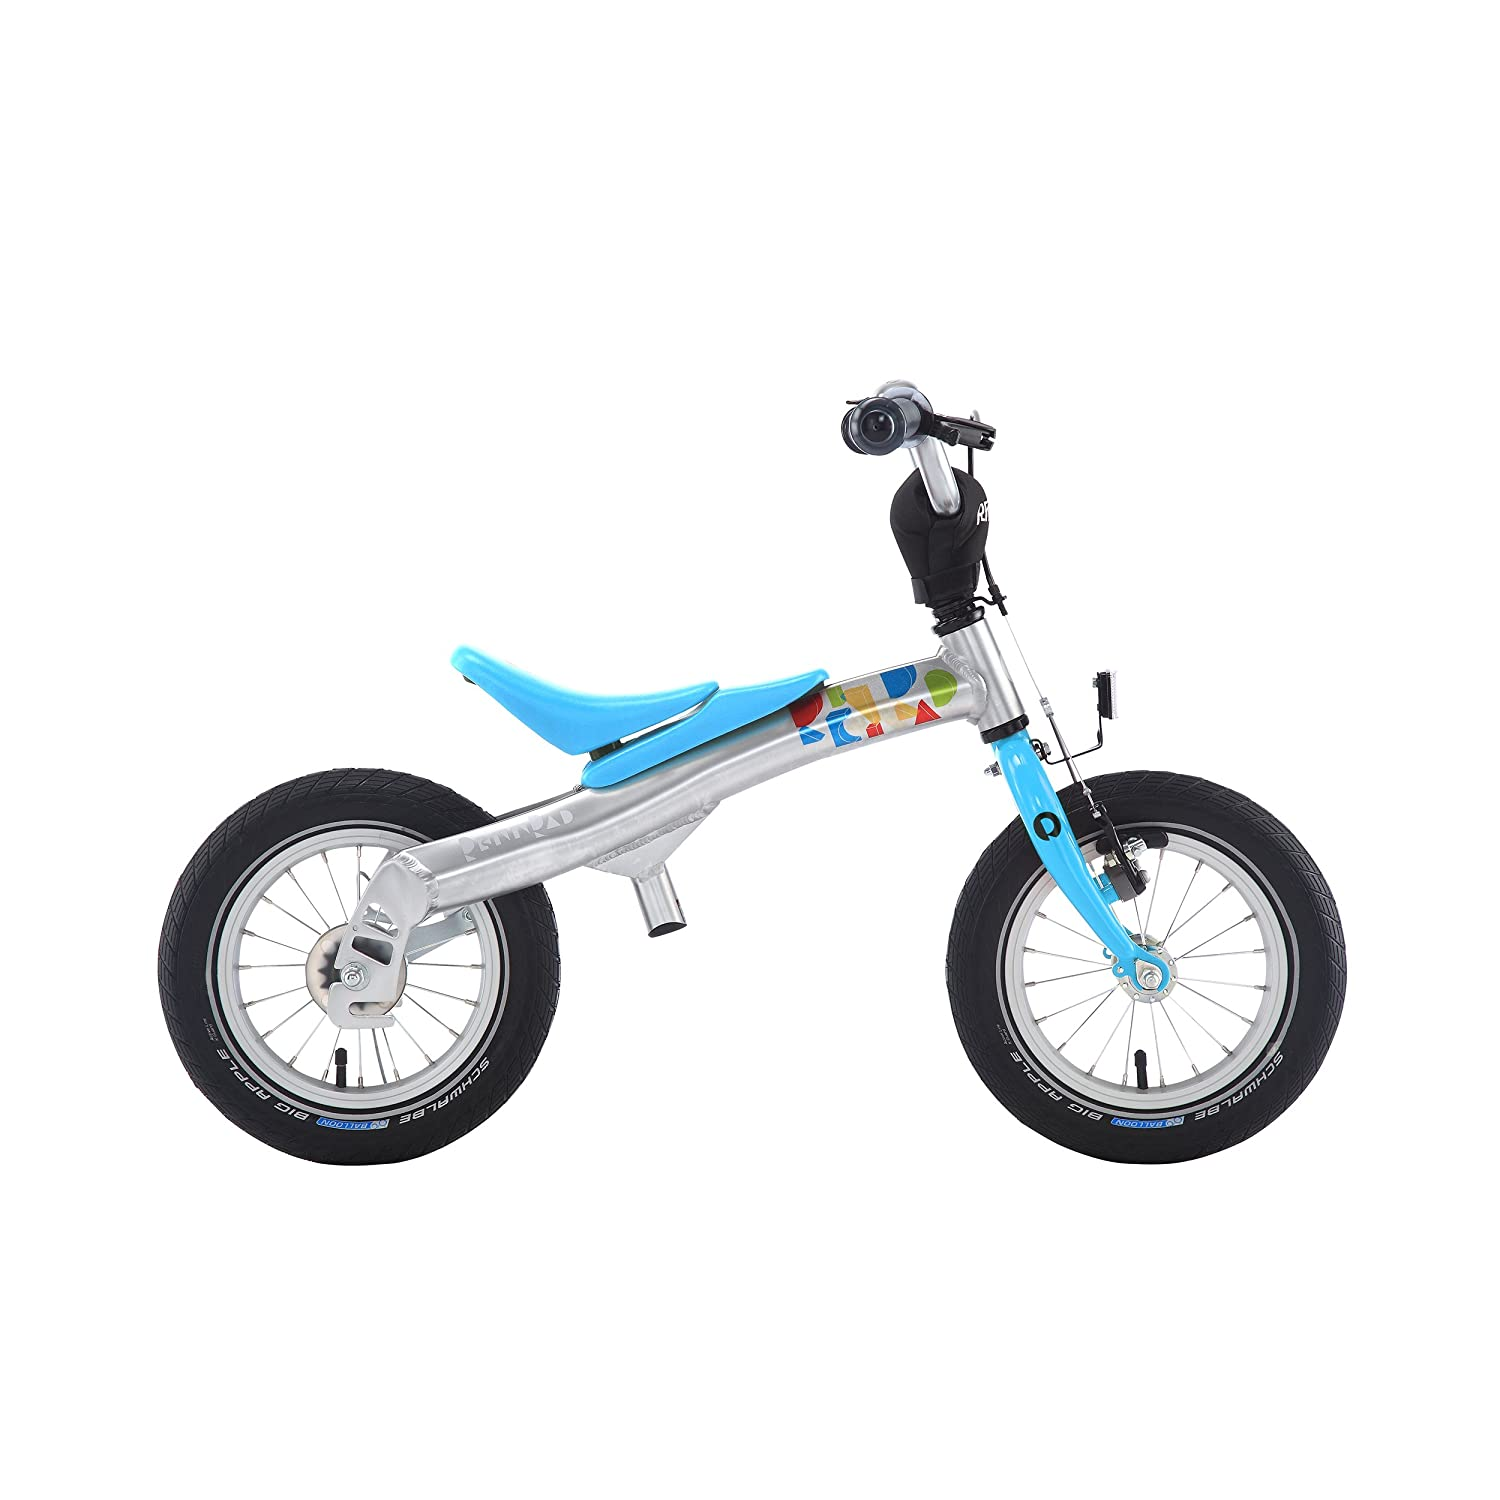 Rennrad Convertible 2 In 1 Balance Pedal Bike 12